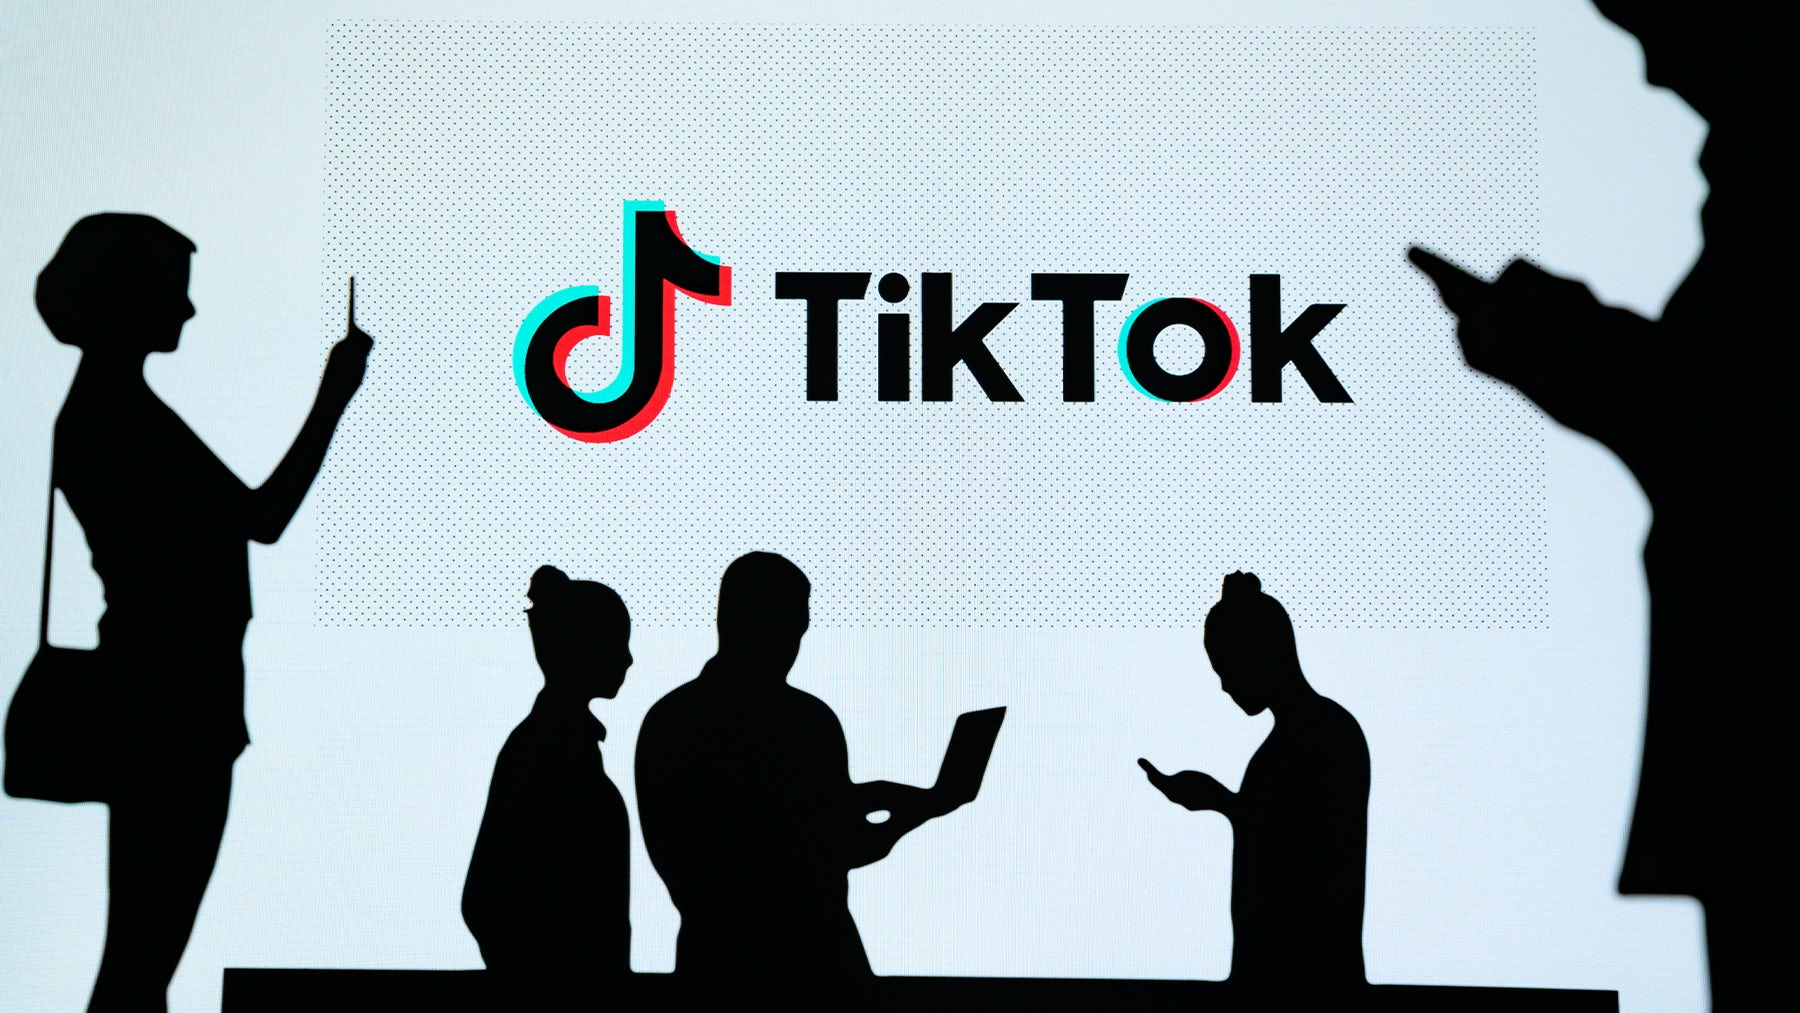 TikTok owner ByteDance is working to ensure it complies with data security requirements. Shutterstock.